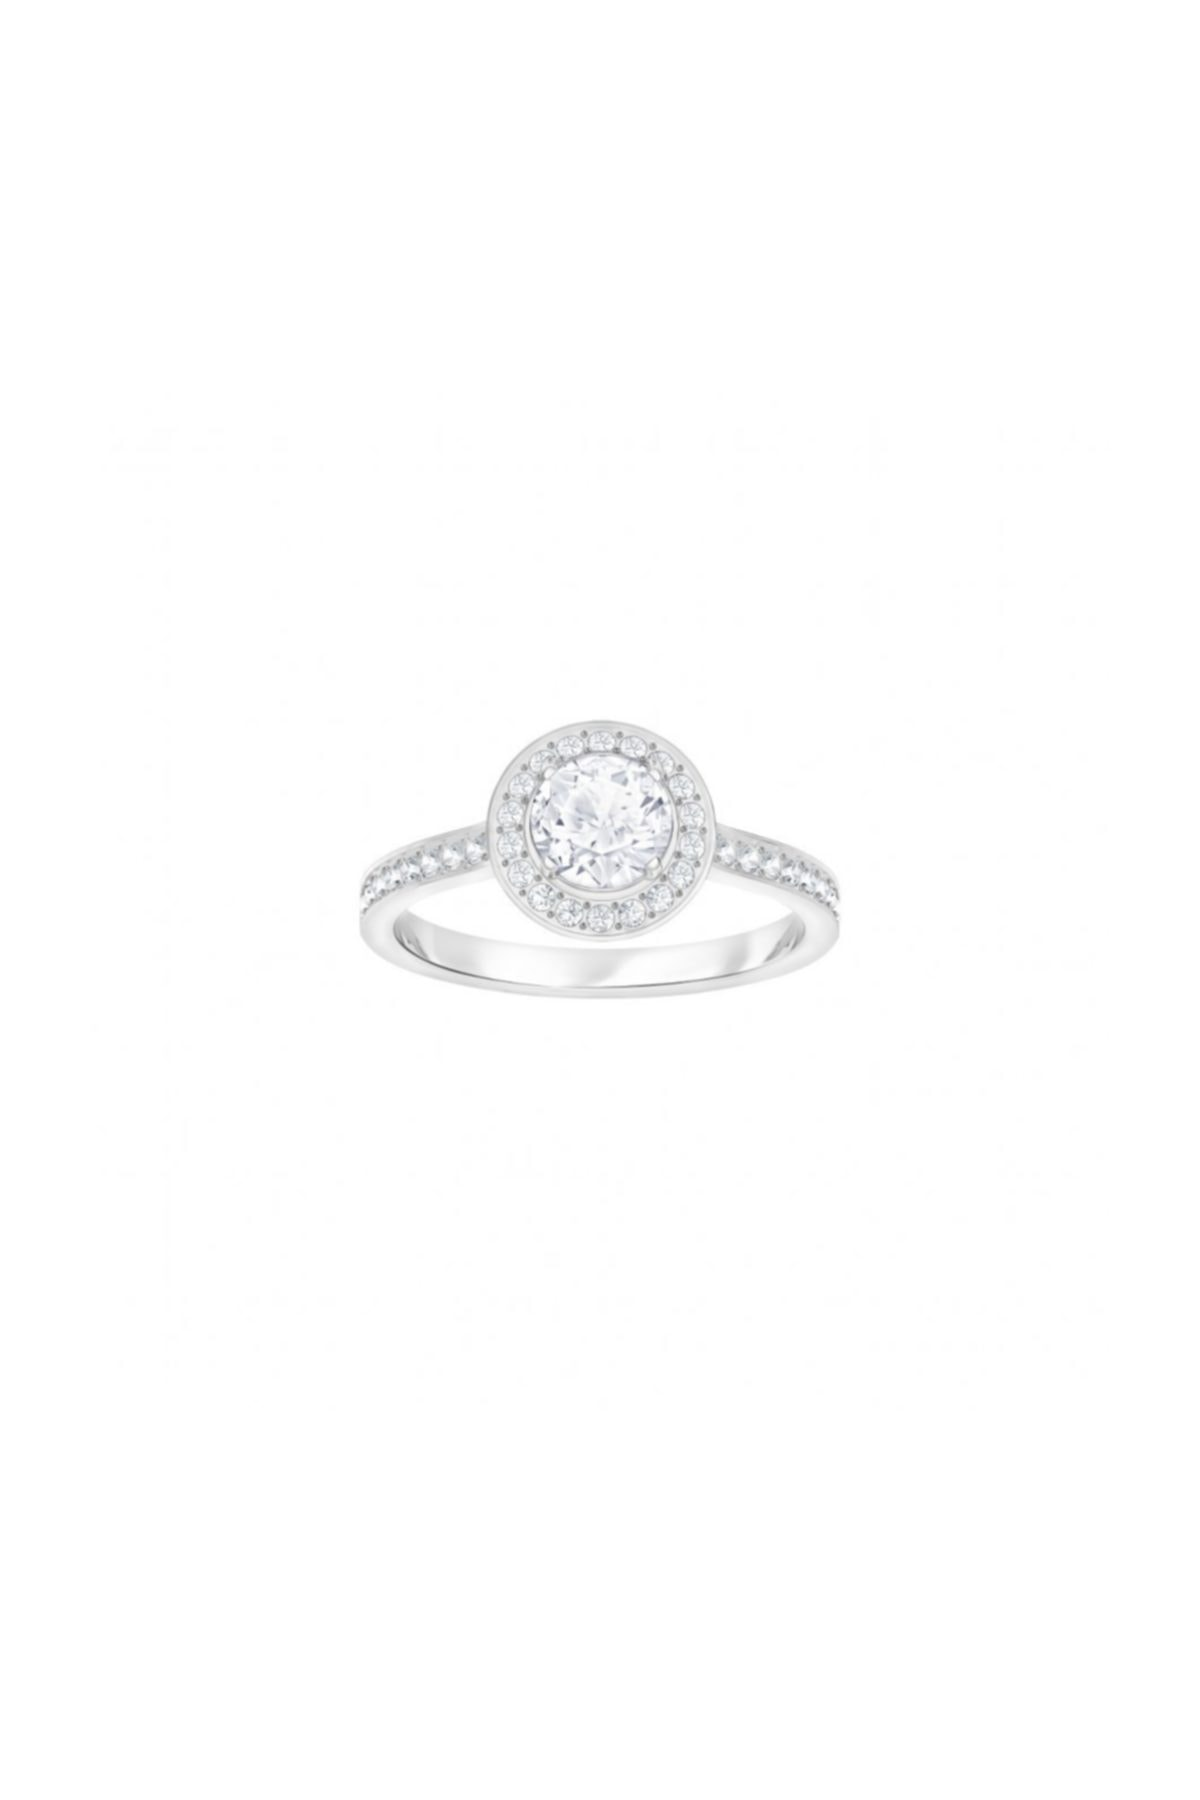 Swarovski Kadın Yüzük Attract:Ring Rnd Light Czwh/Cry/Rhs 58 5409187 1